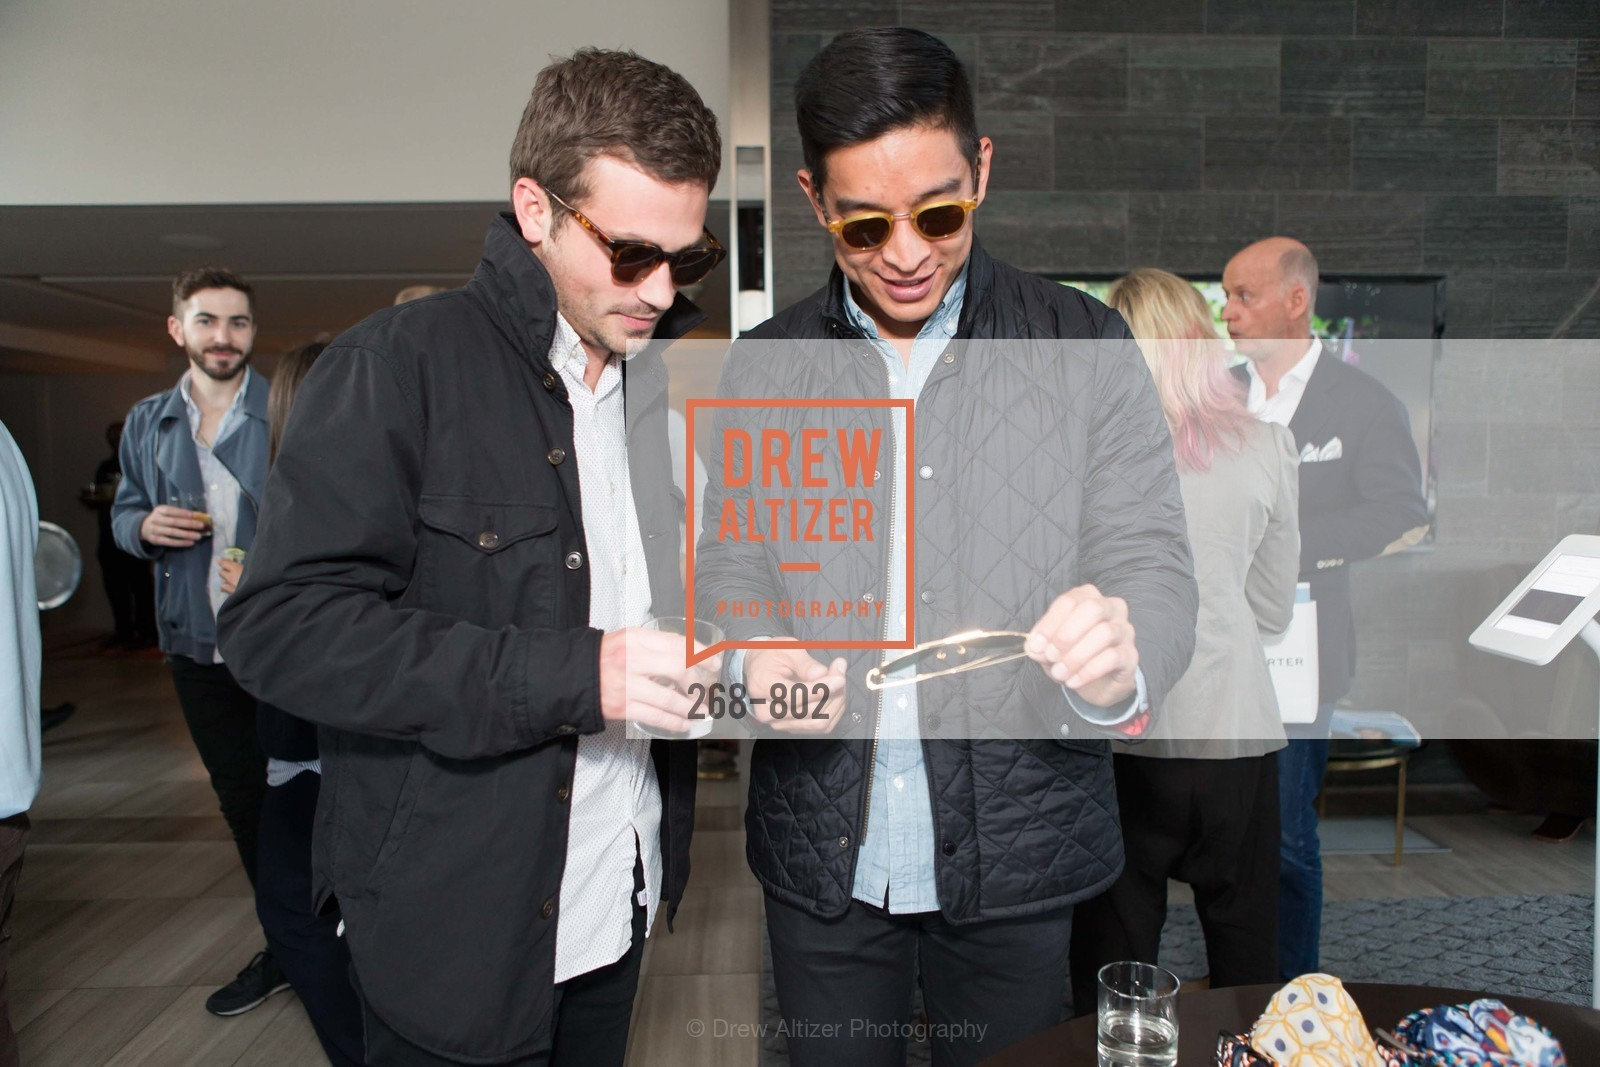 Jordan Bewtner, Alex Kim, MR PORTER Celebrate The San Francisco Issue of The Journal, US, April 24th, 2015,Drew Altizer, Drew Altizer Photography, full-service event agency, private events, San Francisco photographer, photographer California